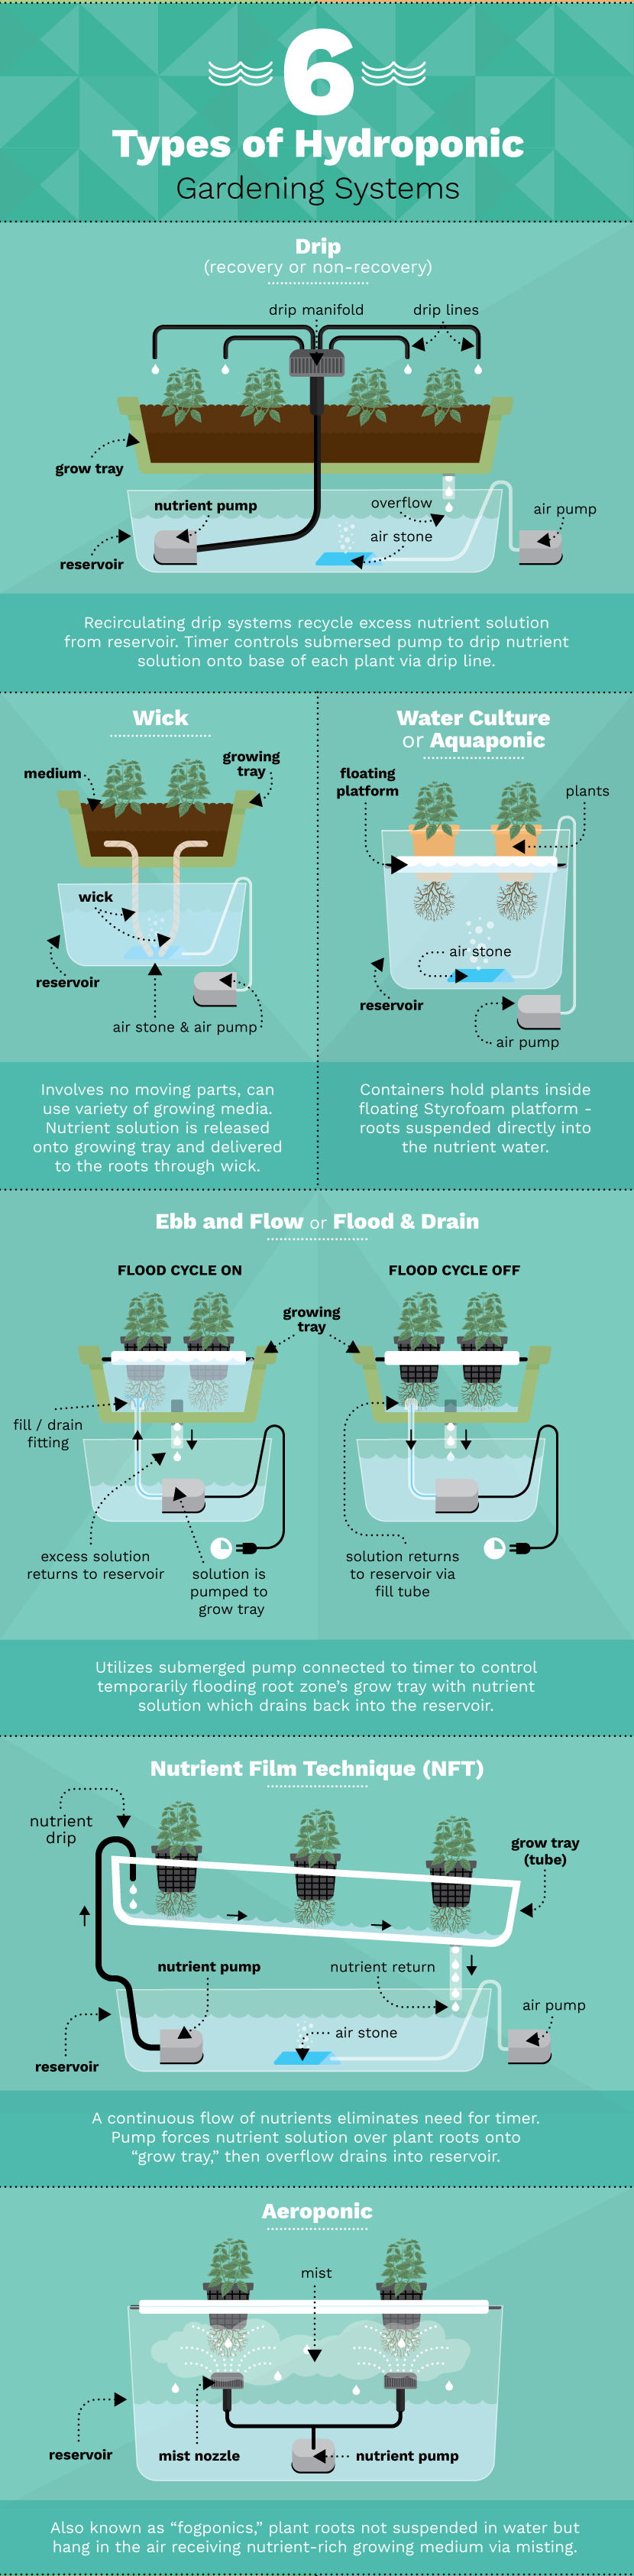 six-types-hydroponic-gardening-systems.png